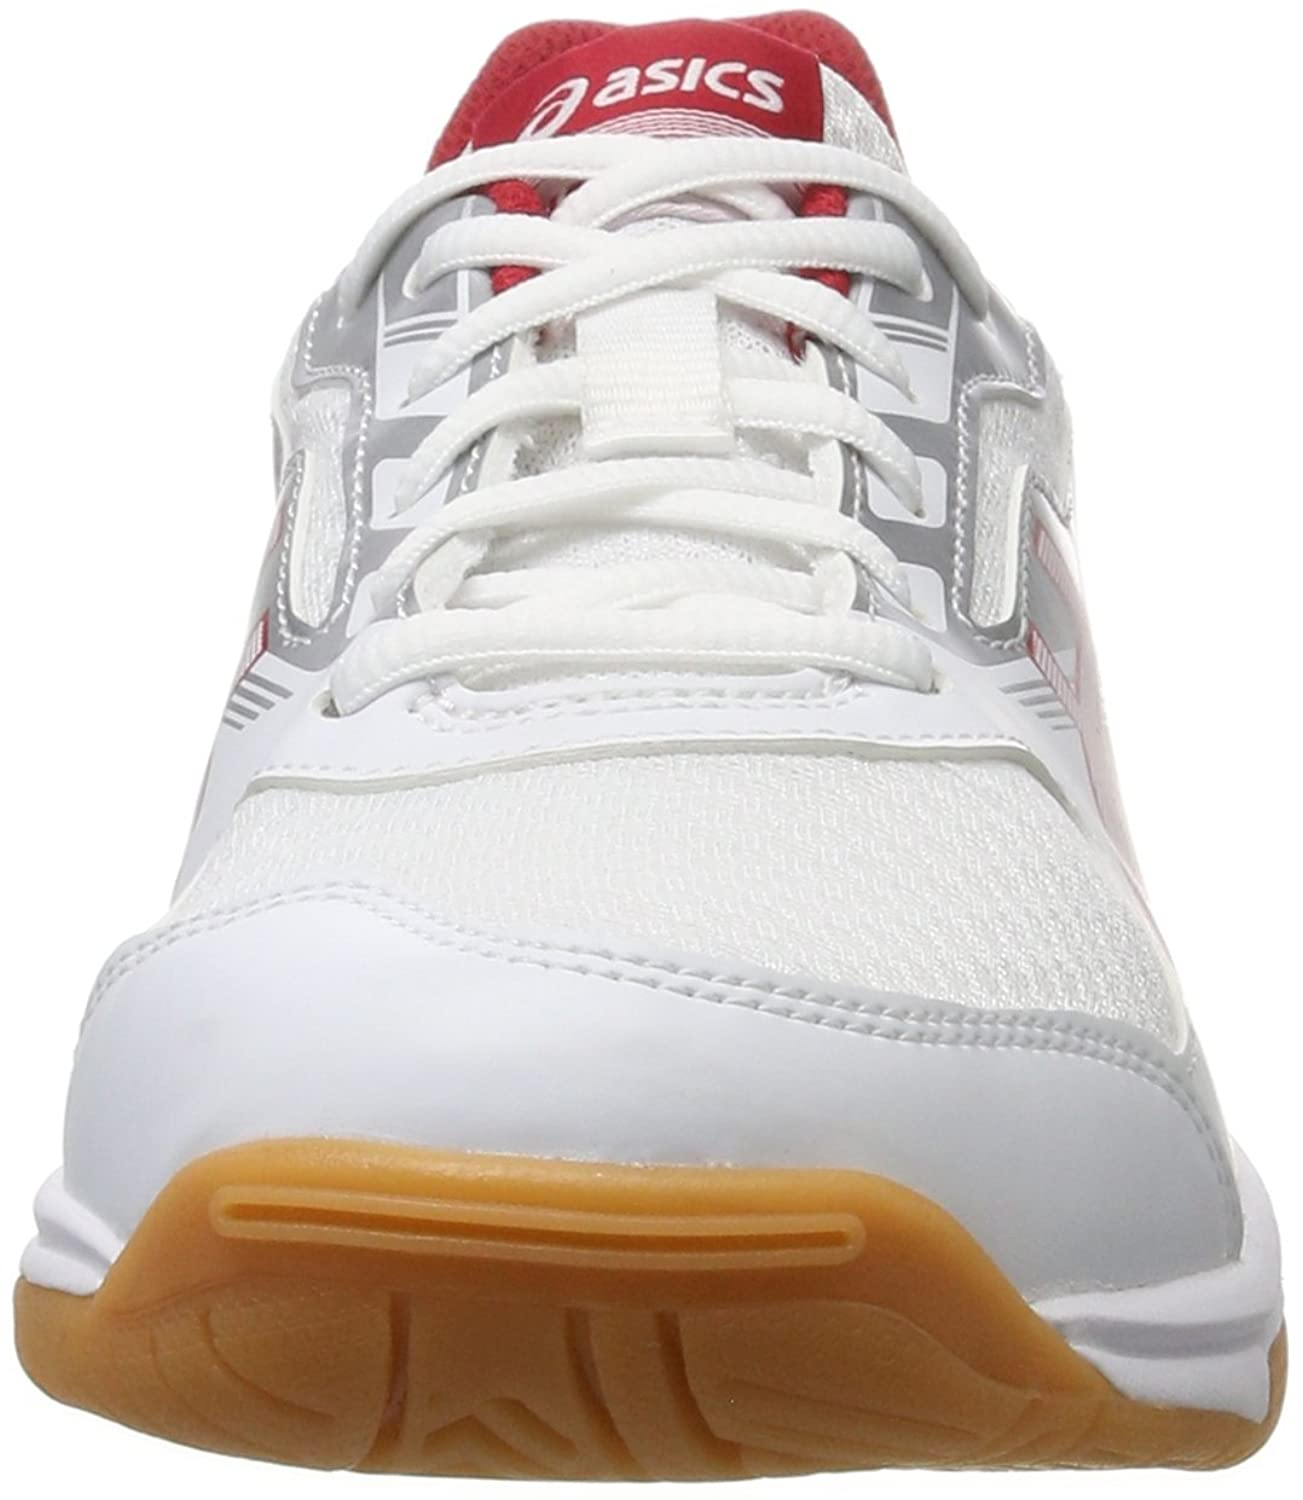 Asics Upcourt 2, Chaussures de Volleyball Homme, Blanc (White/Prime Red/Silver 0123), 44 EU